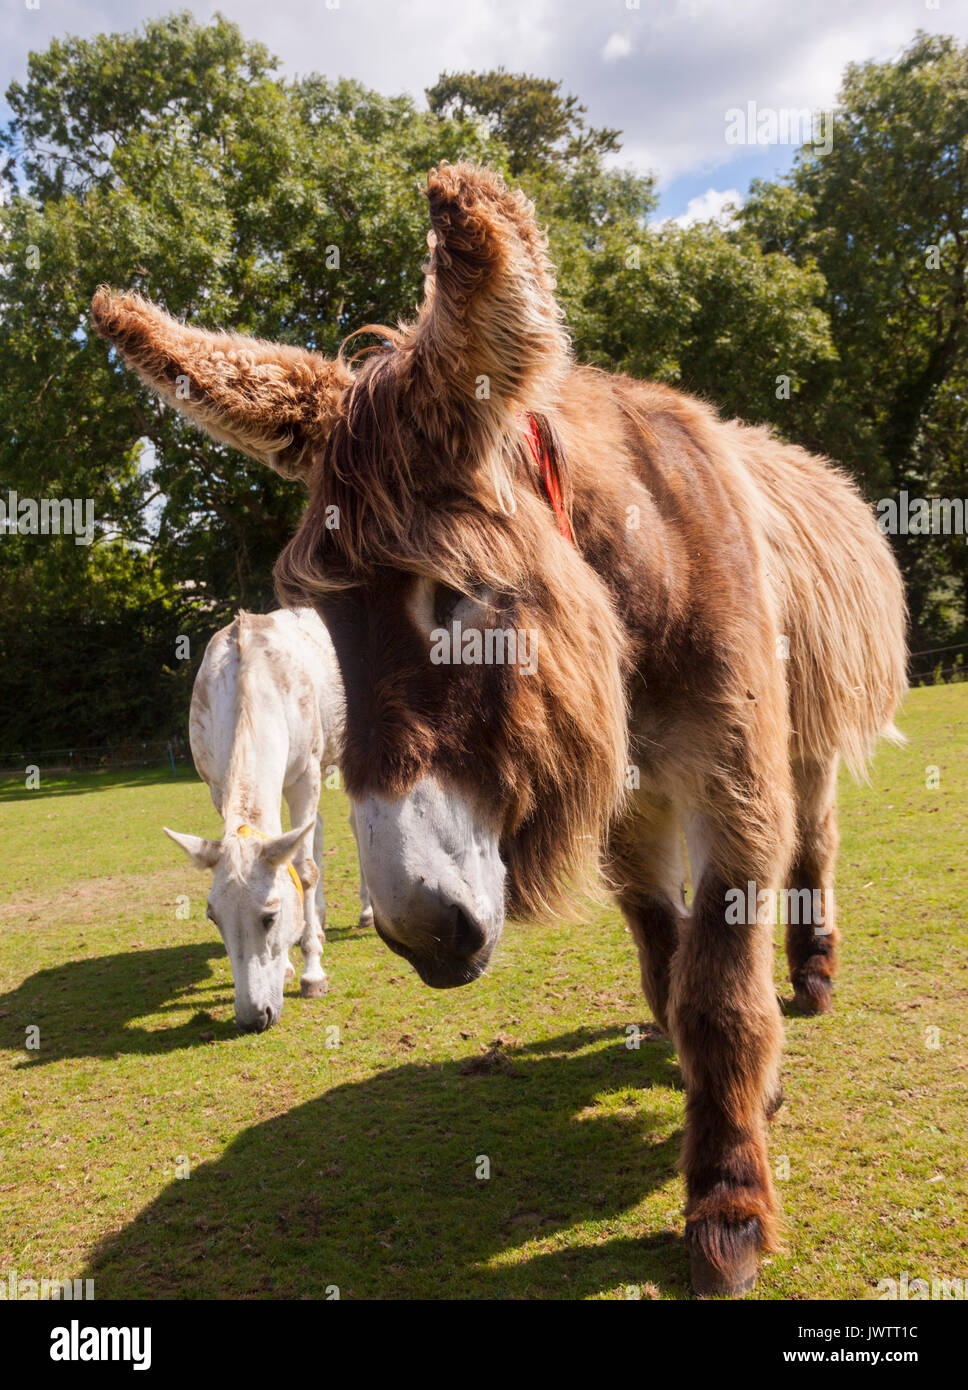 dartanyan-a-long-haired-donkey-at-sidmou